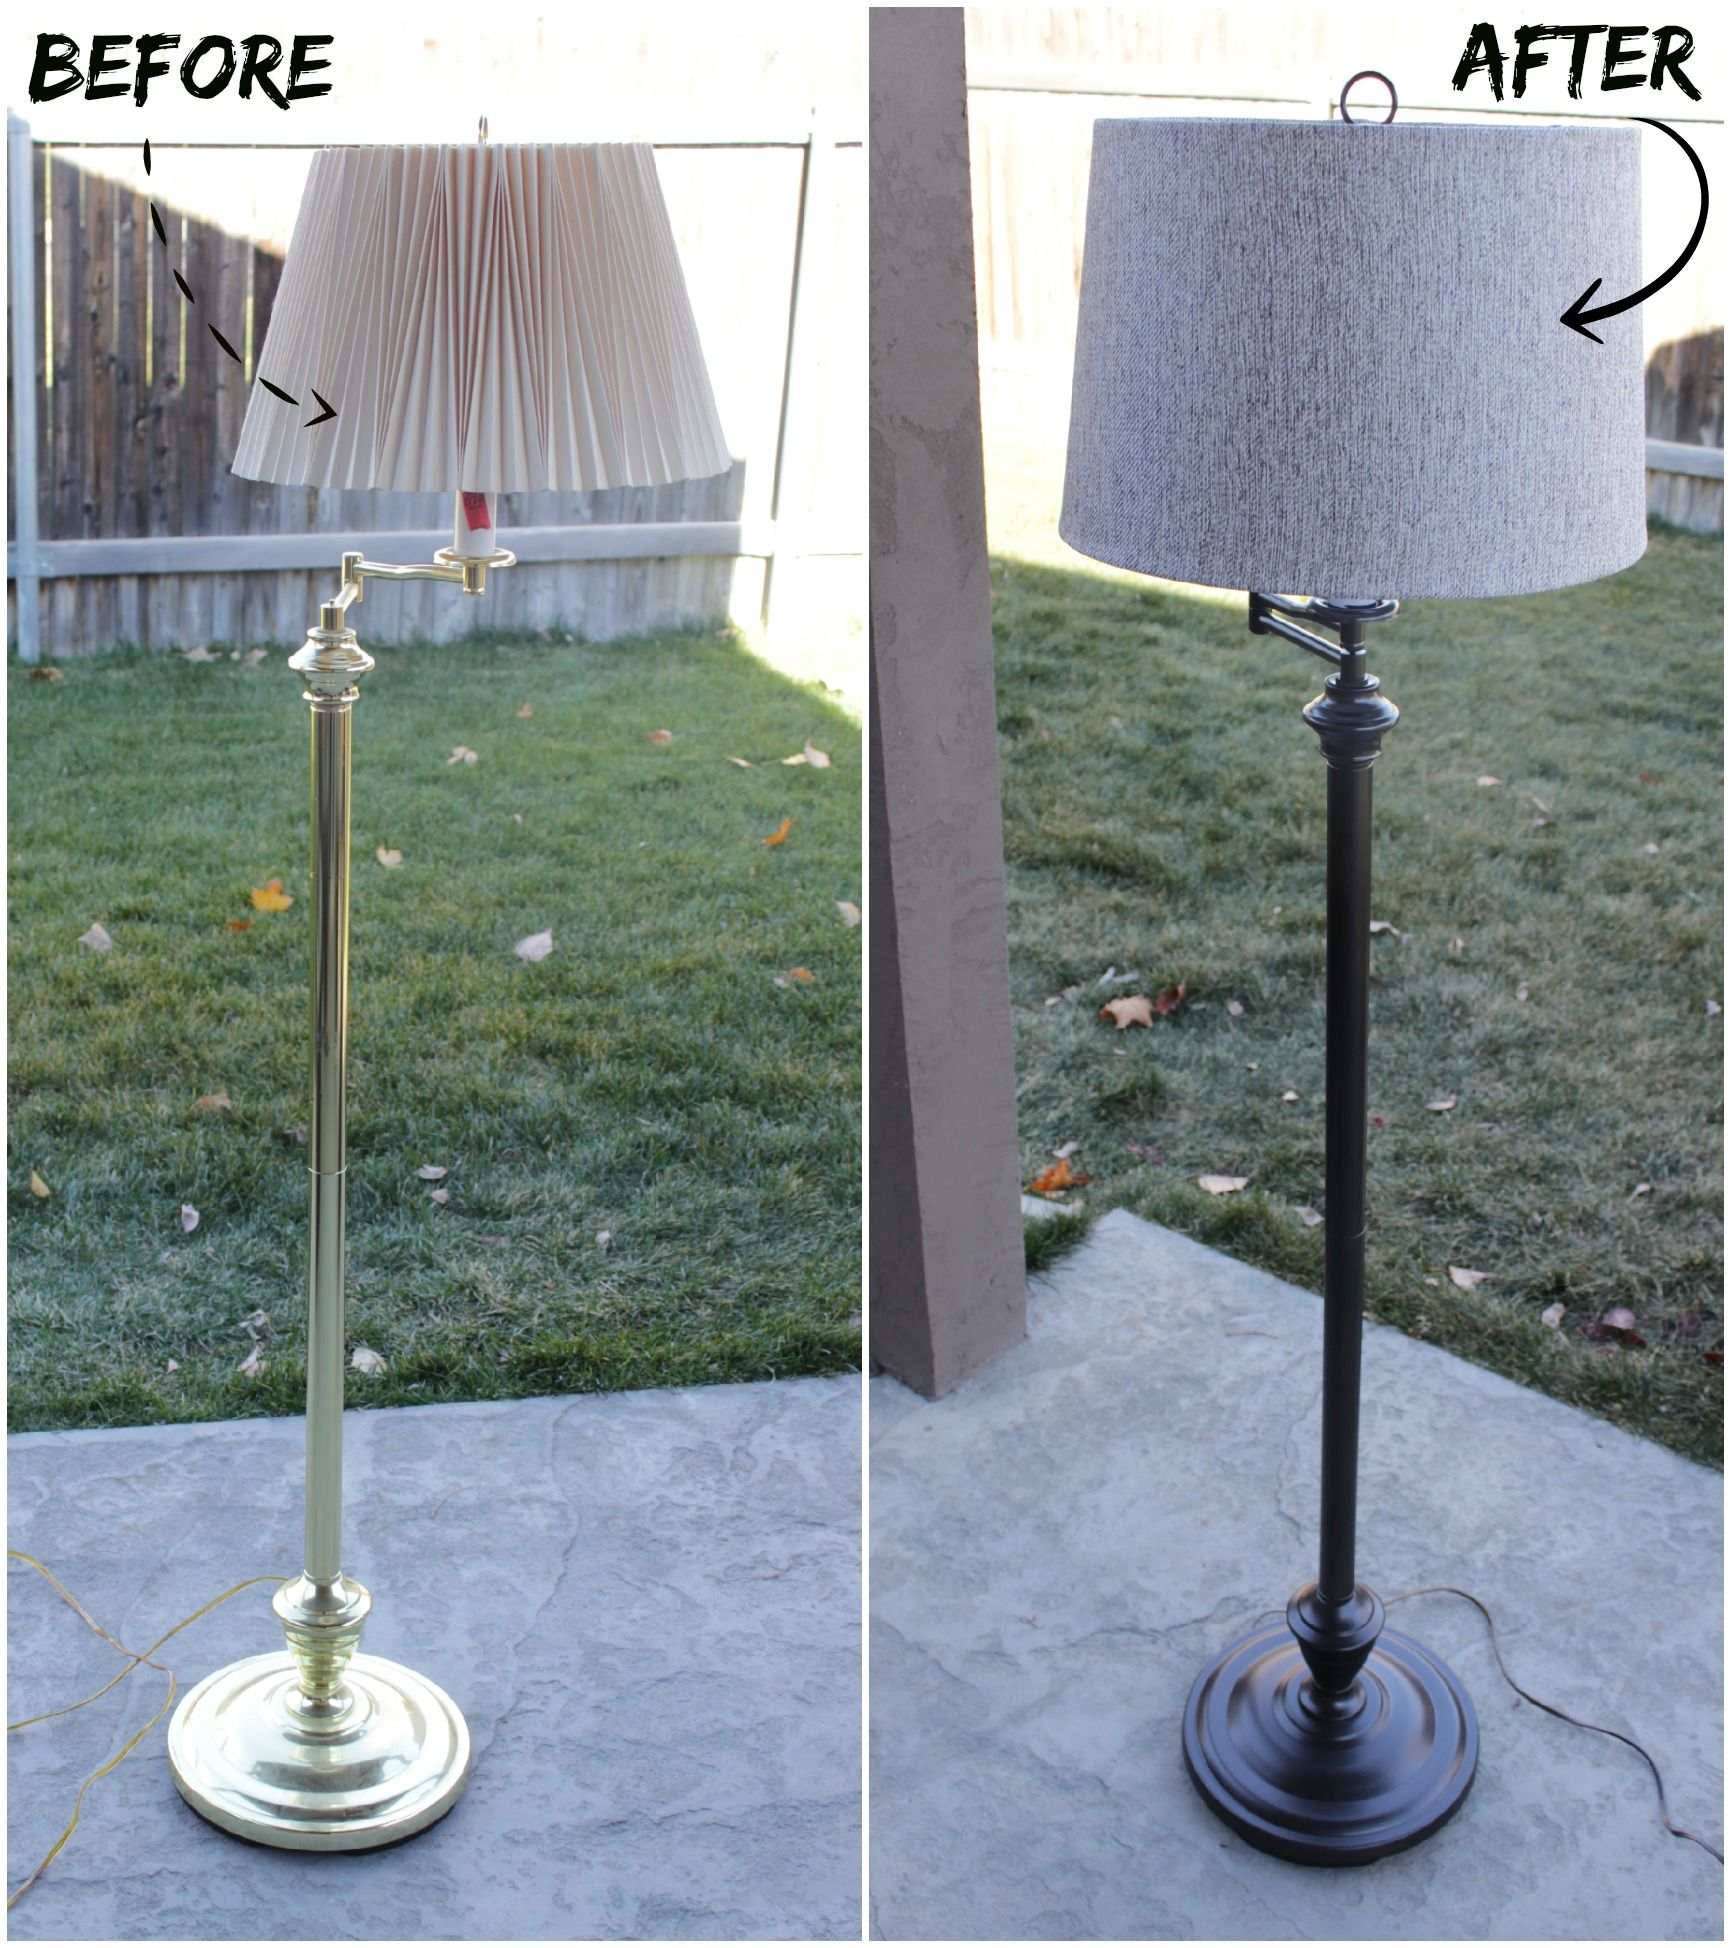 Diy How To Update An Old Lamp I Have A Lamp Just Like This That Needs A Makeover Floorlamp Diy Lamp Makeover Diy Floor Lamp Floor Lamp Makeover